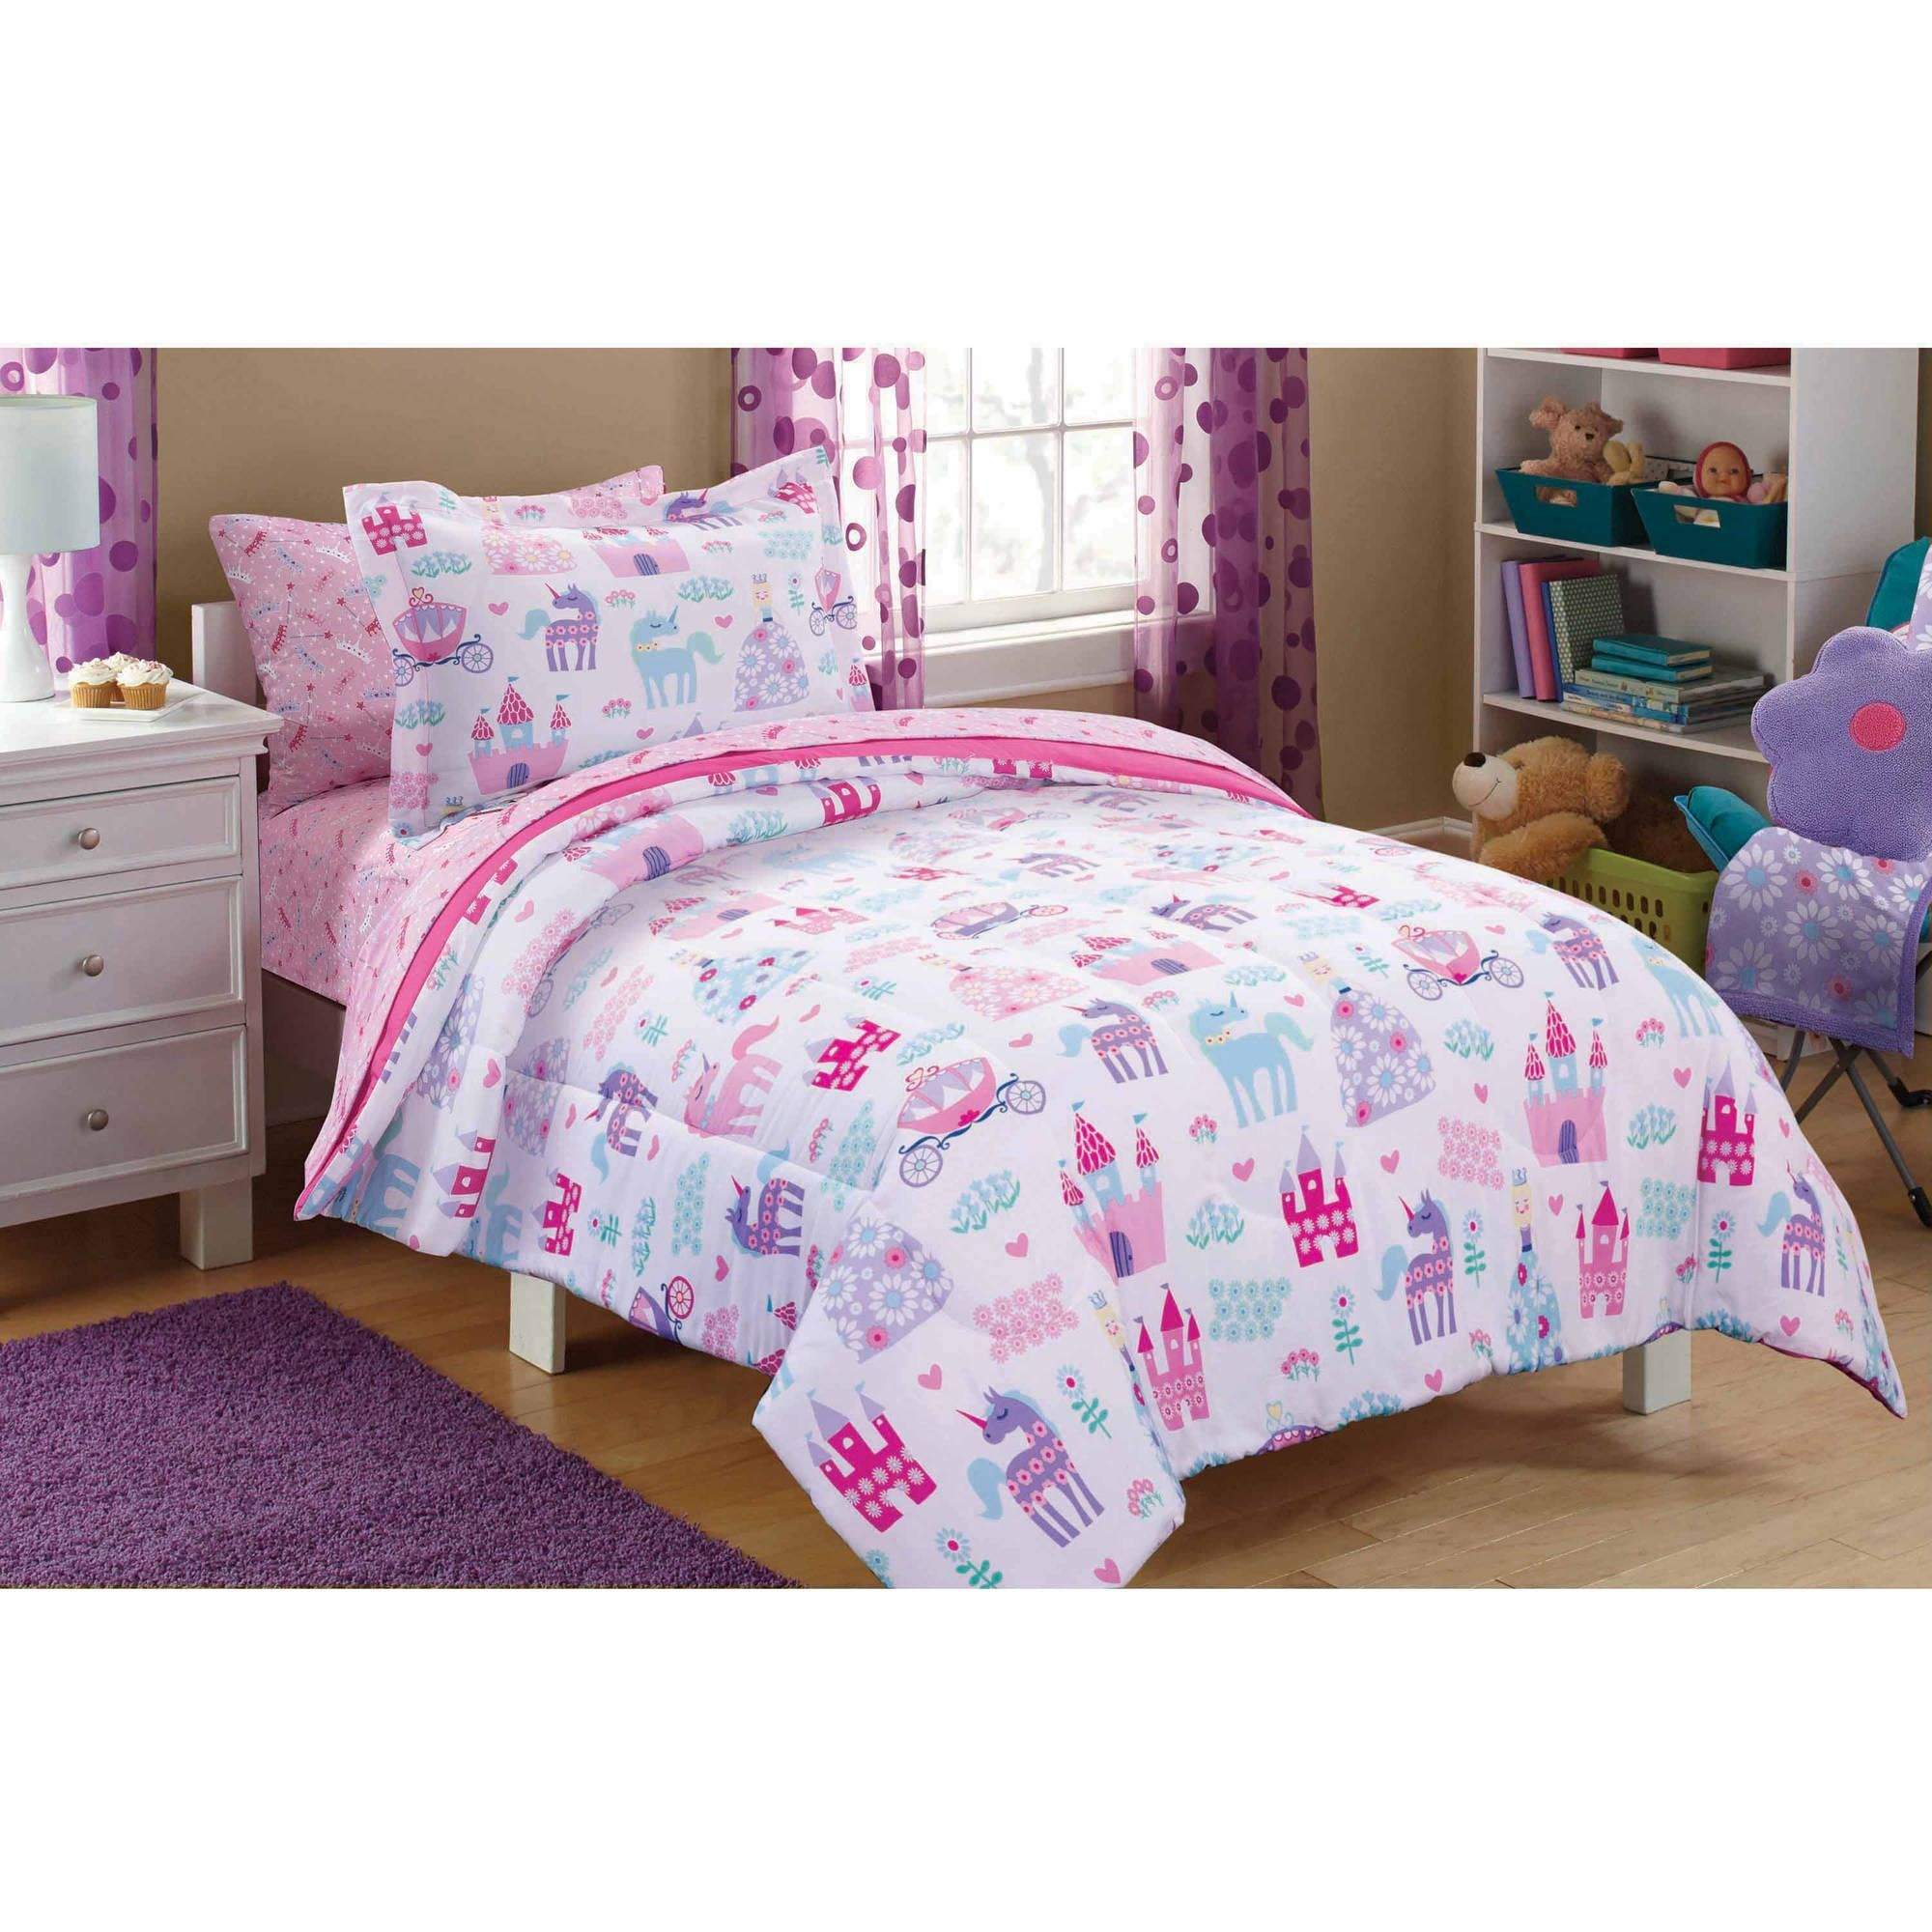 Kids Pretty Princess Bed in a